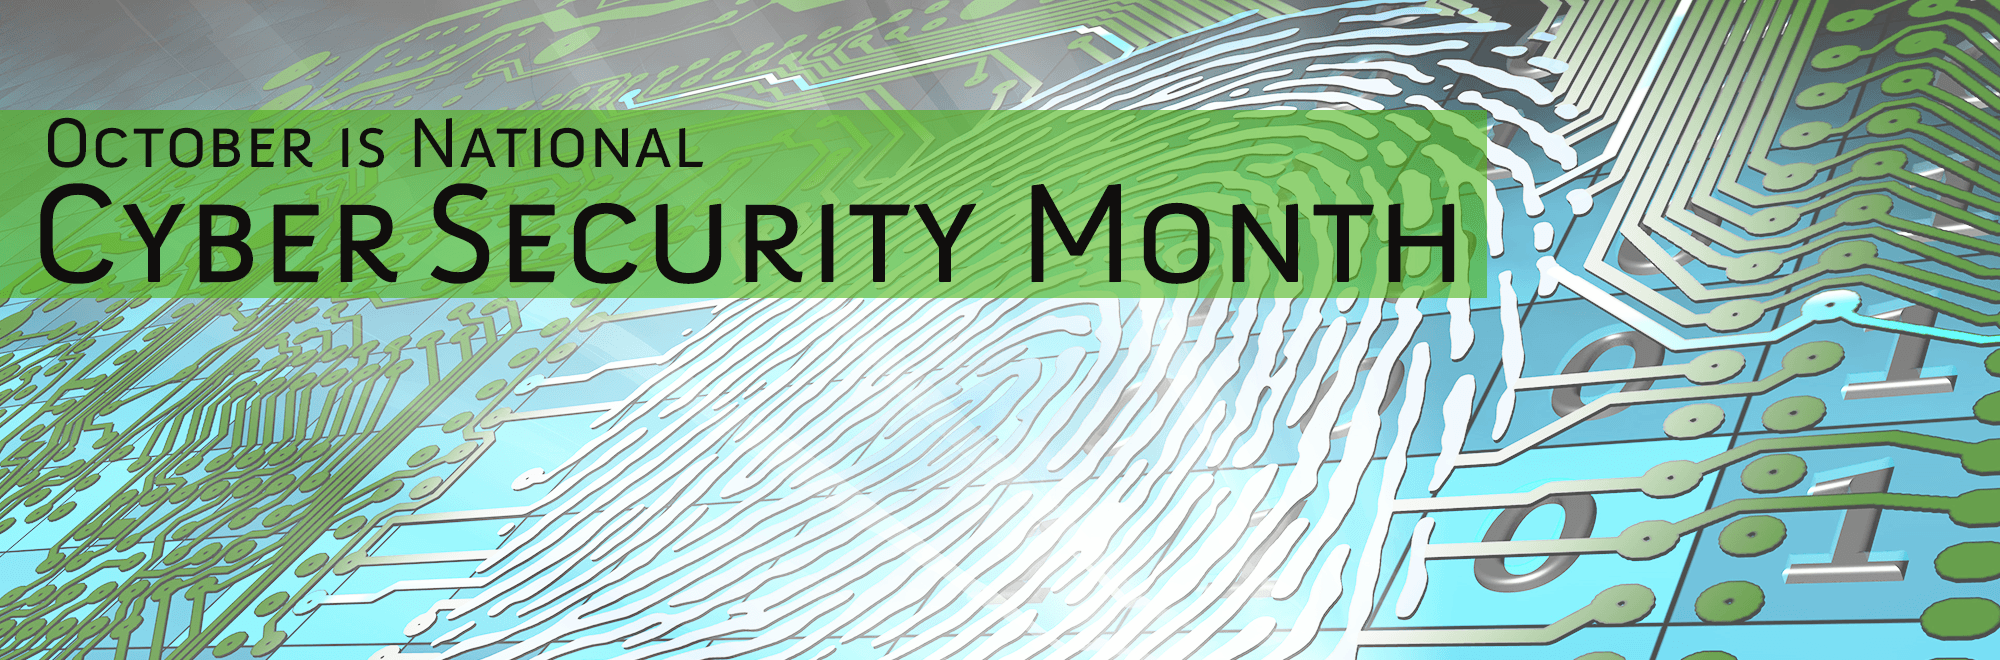 oct-cyber-security-month